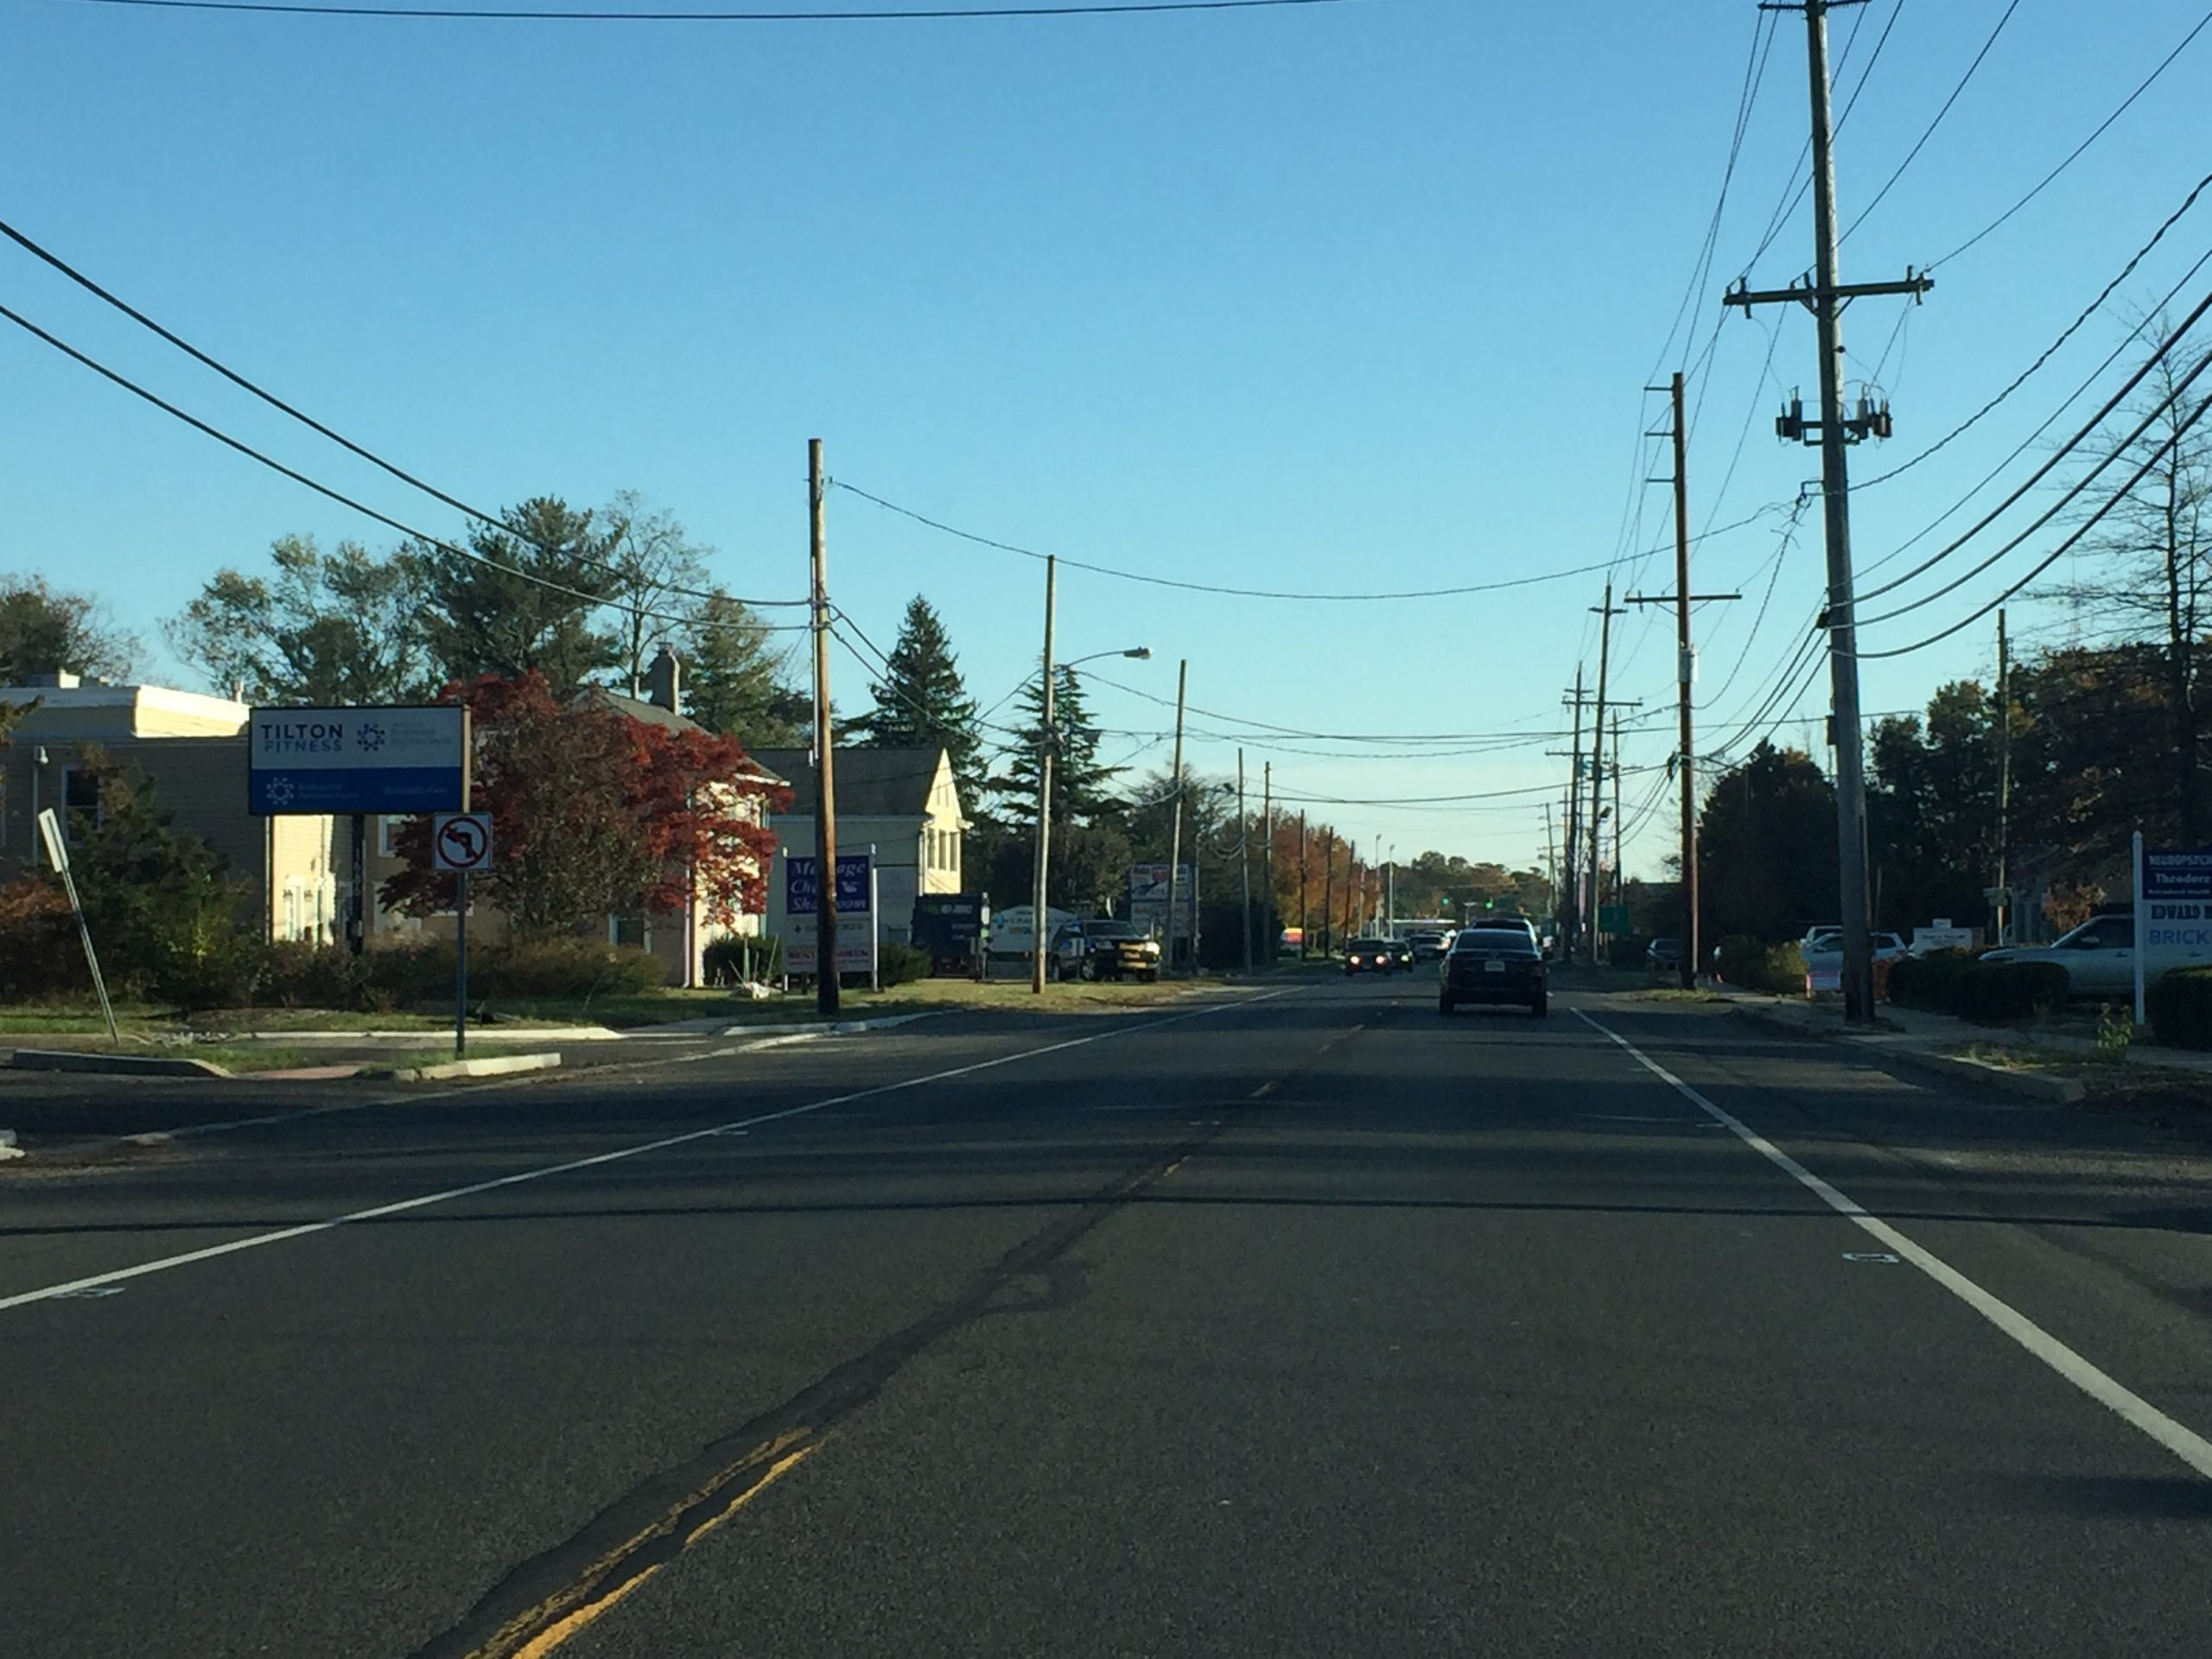 The Route 88 hospital support zone on Route 88, Brick. (Photo: Daniel Nee)